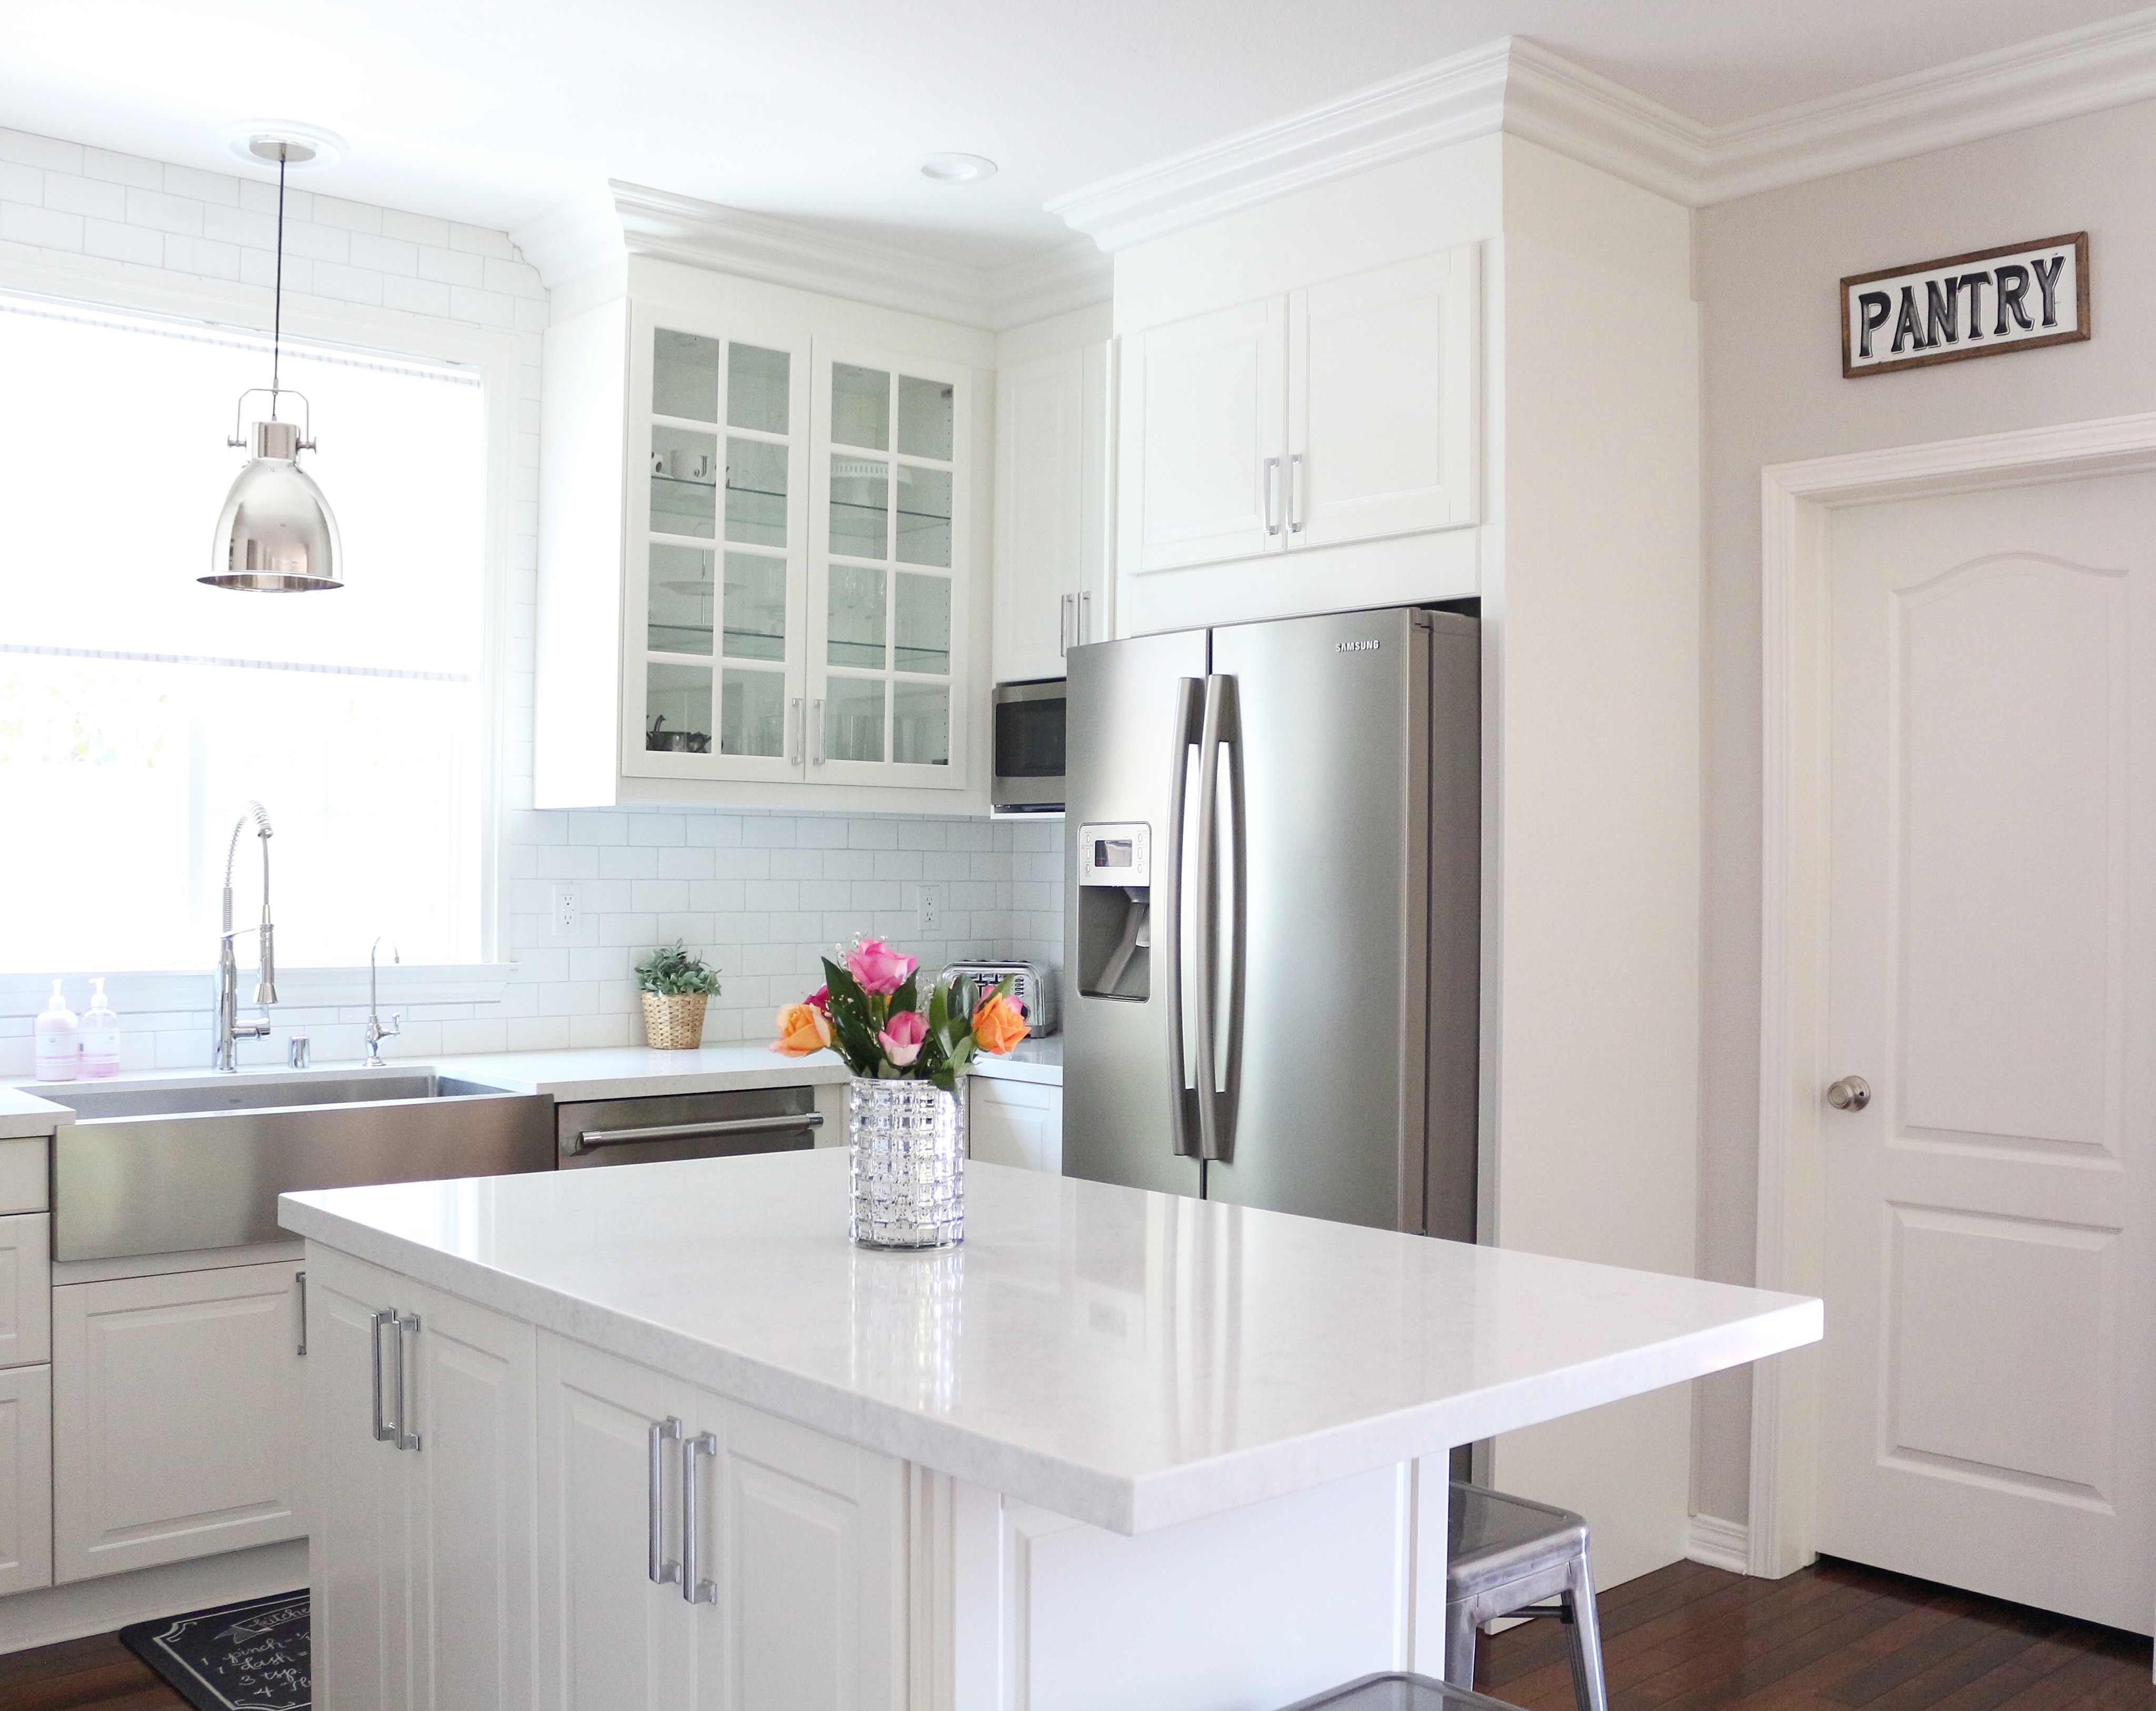 Kitchen Colors White Cabinets Black Countertops customizing ikea cabinets. green tile kitchen backsplash. kitchen